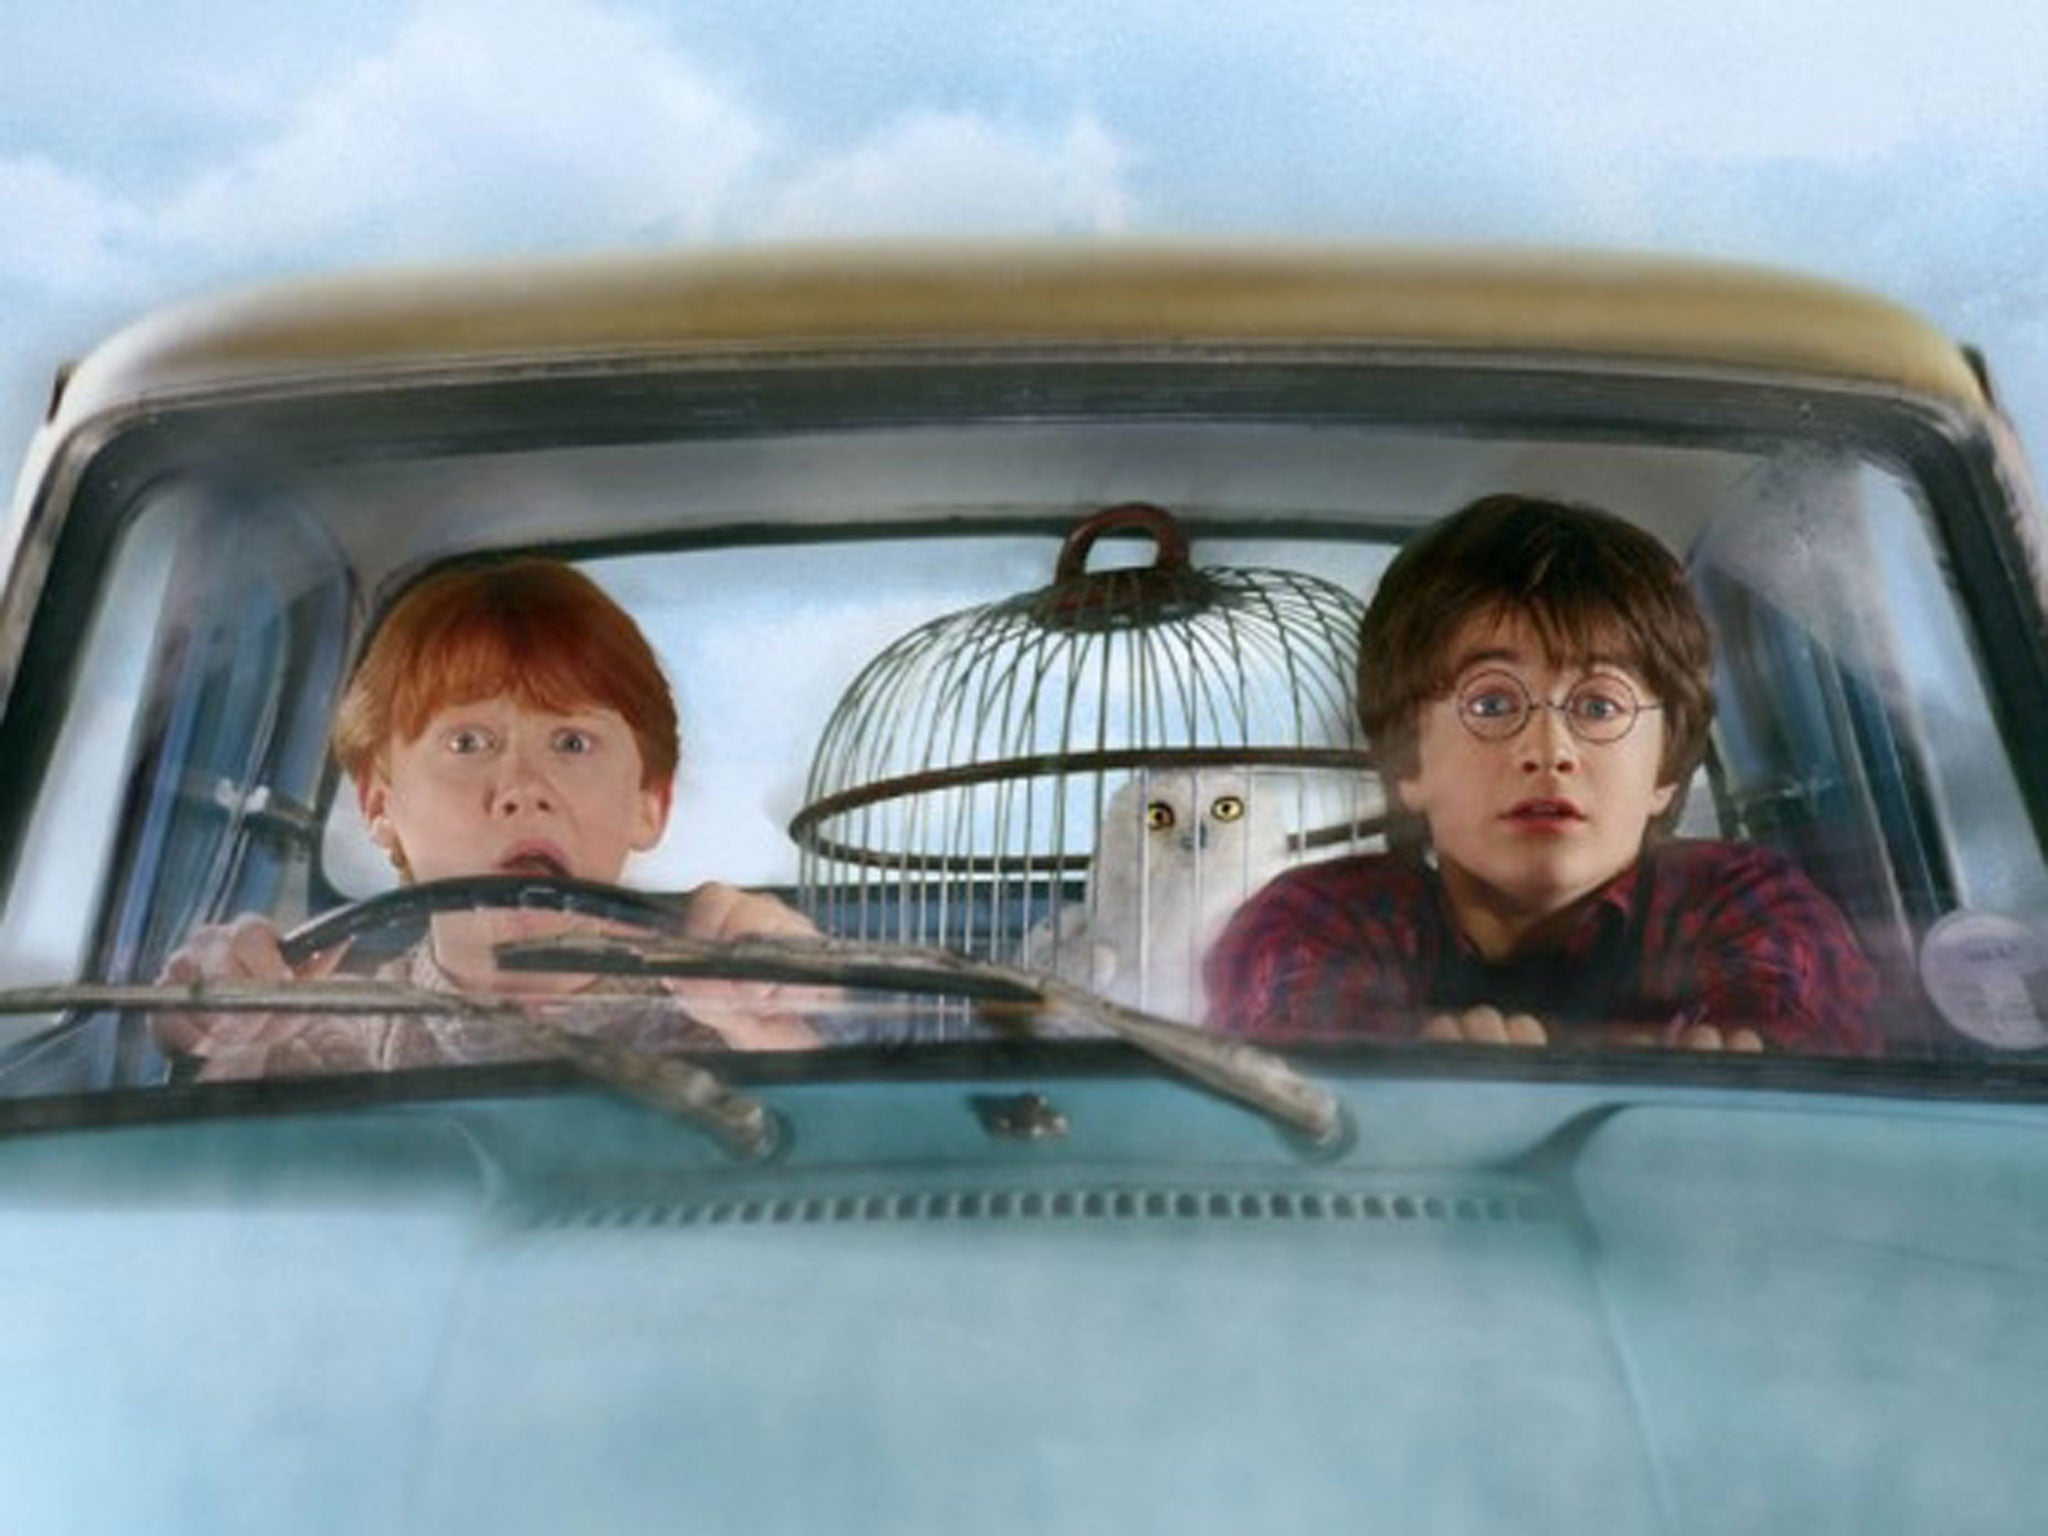 JK Rowling finally reveals why the Dursleys hated Harry Potter so